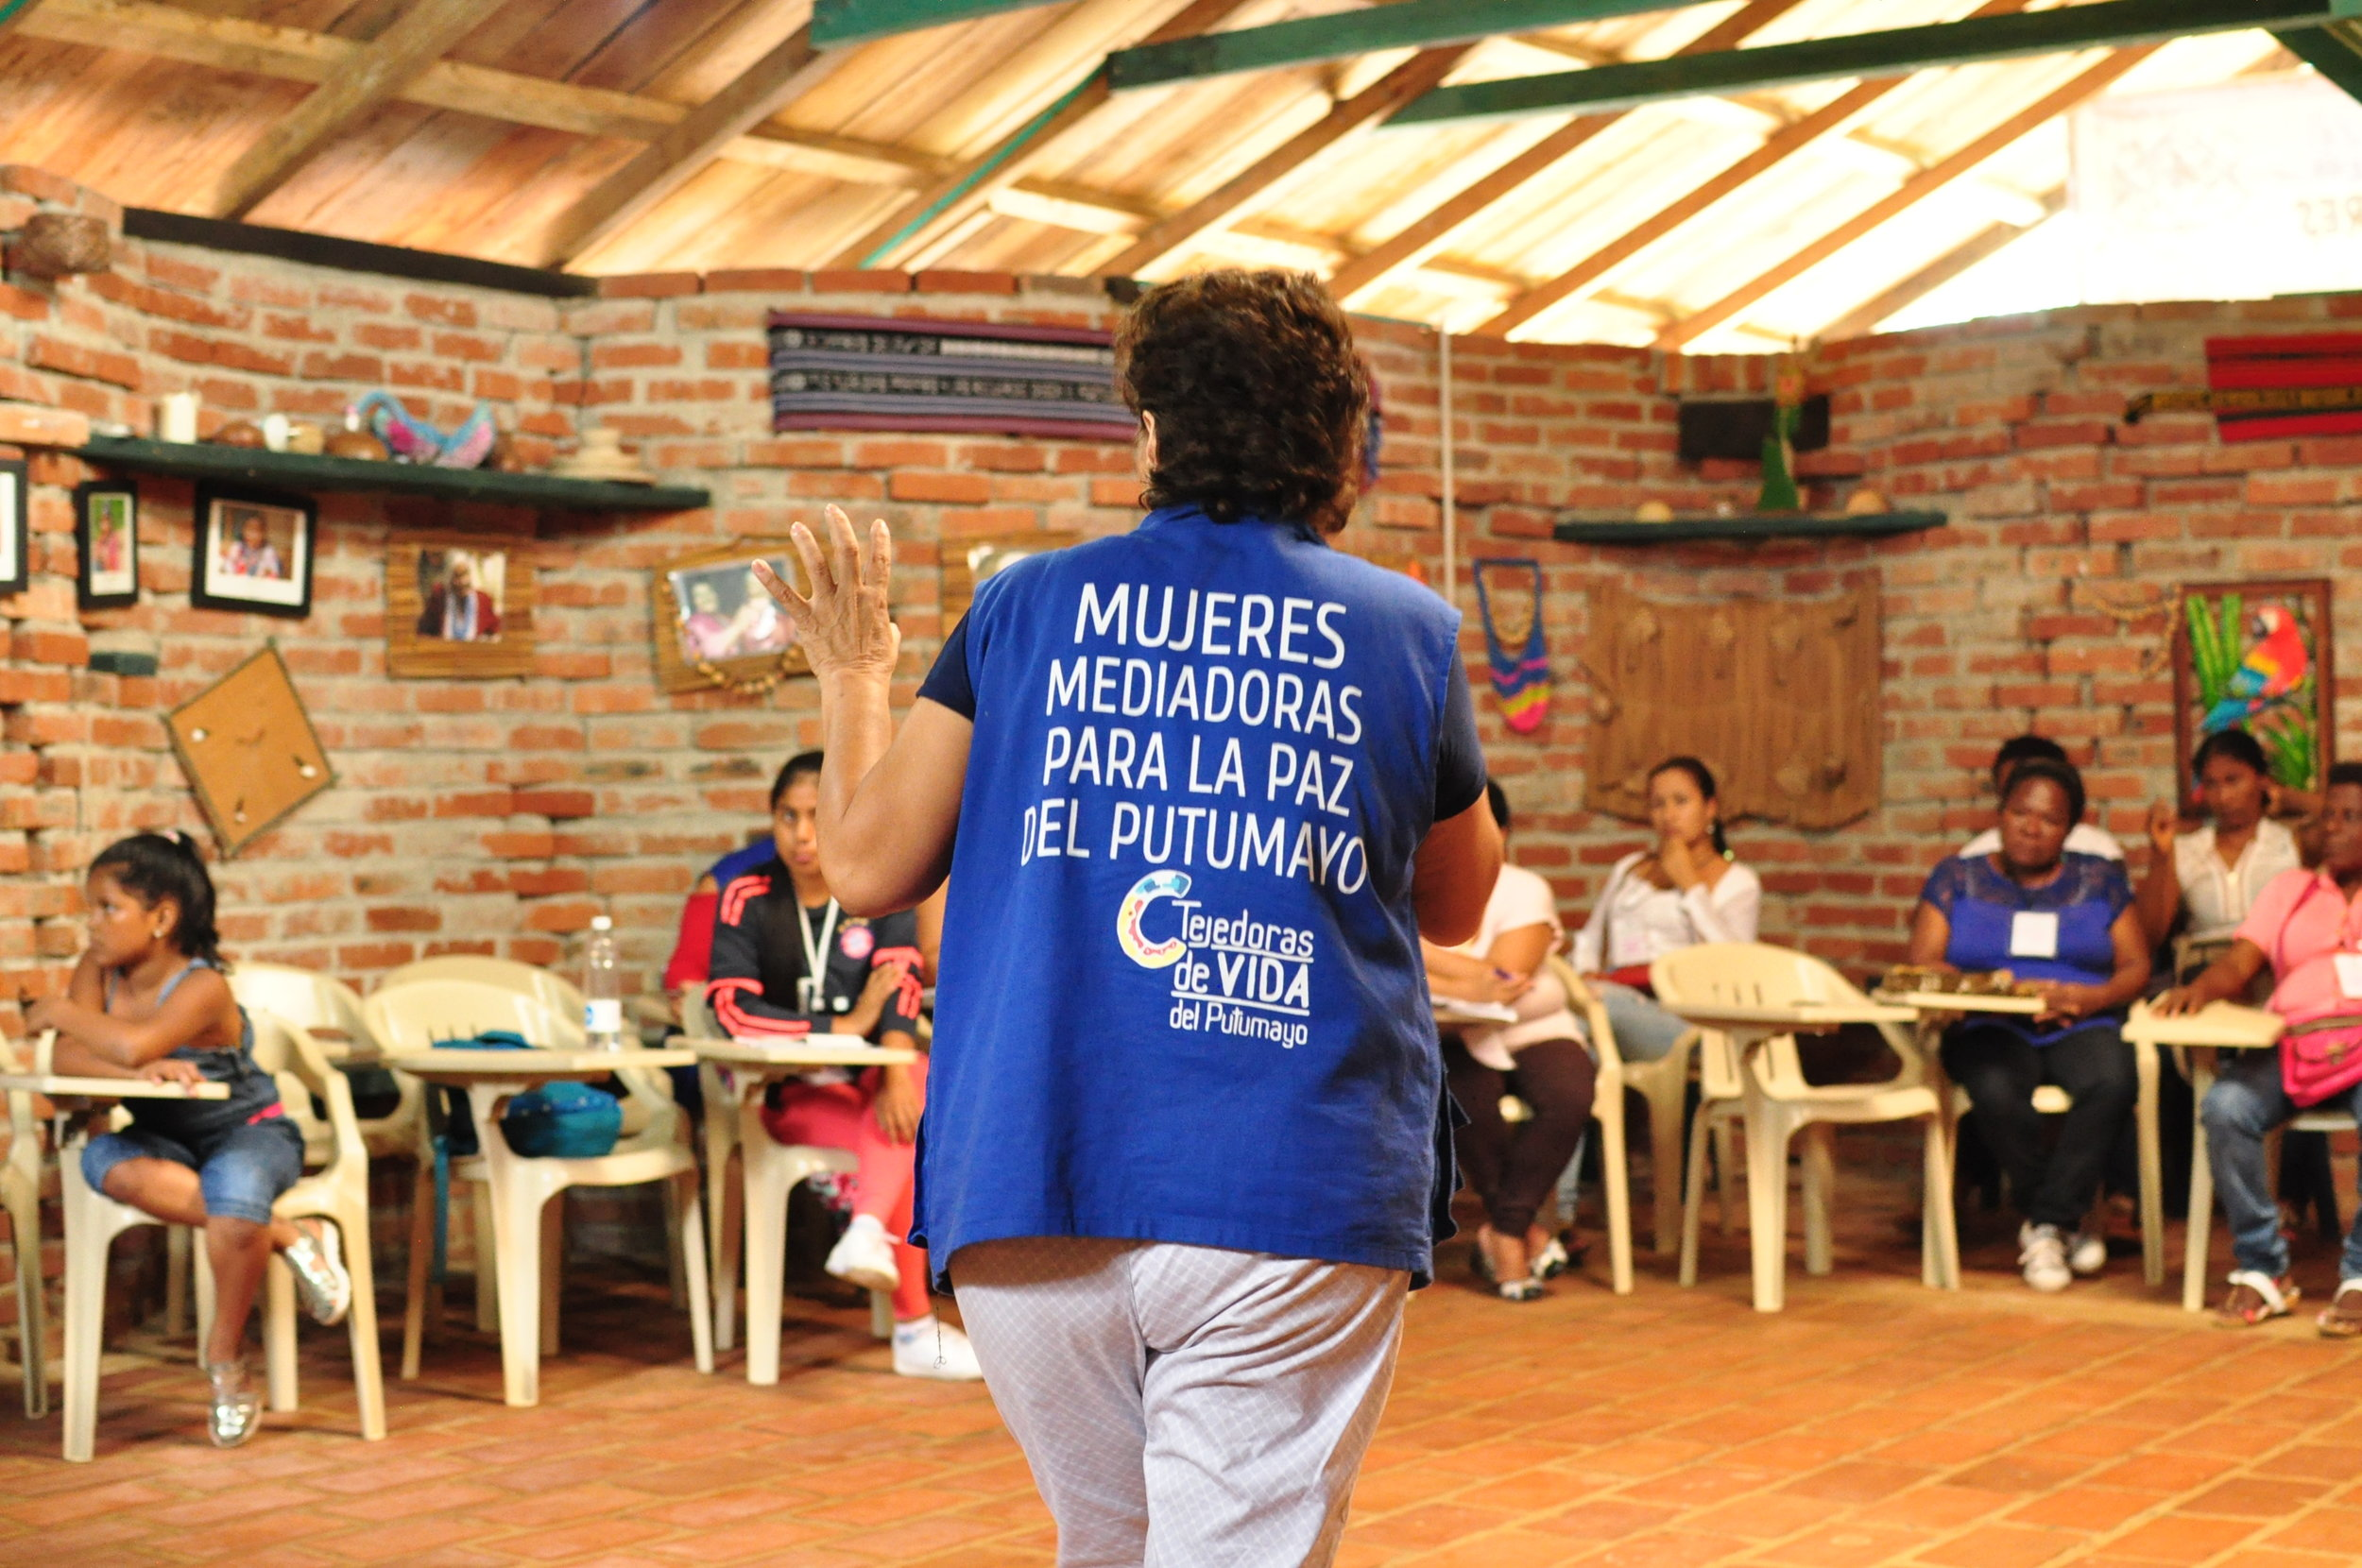 In the absence of a strong government effort to educate rural populations on the peace agreement, women's activists such as this one in Putumayo province, are traveling to remote areas throughout Colombia, oftentimes with their personal resources, to get the word out about the peace deal.